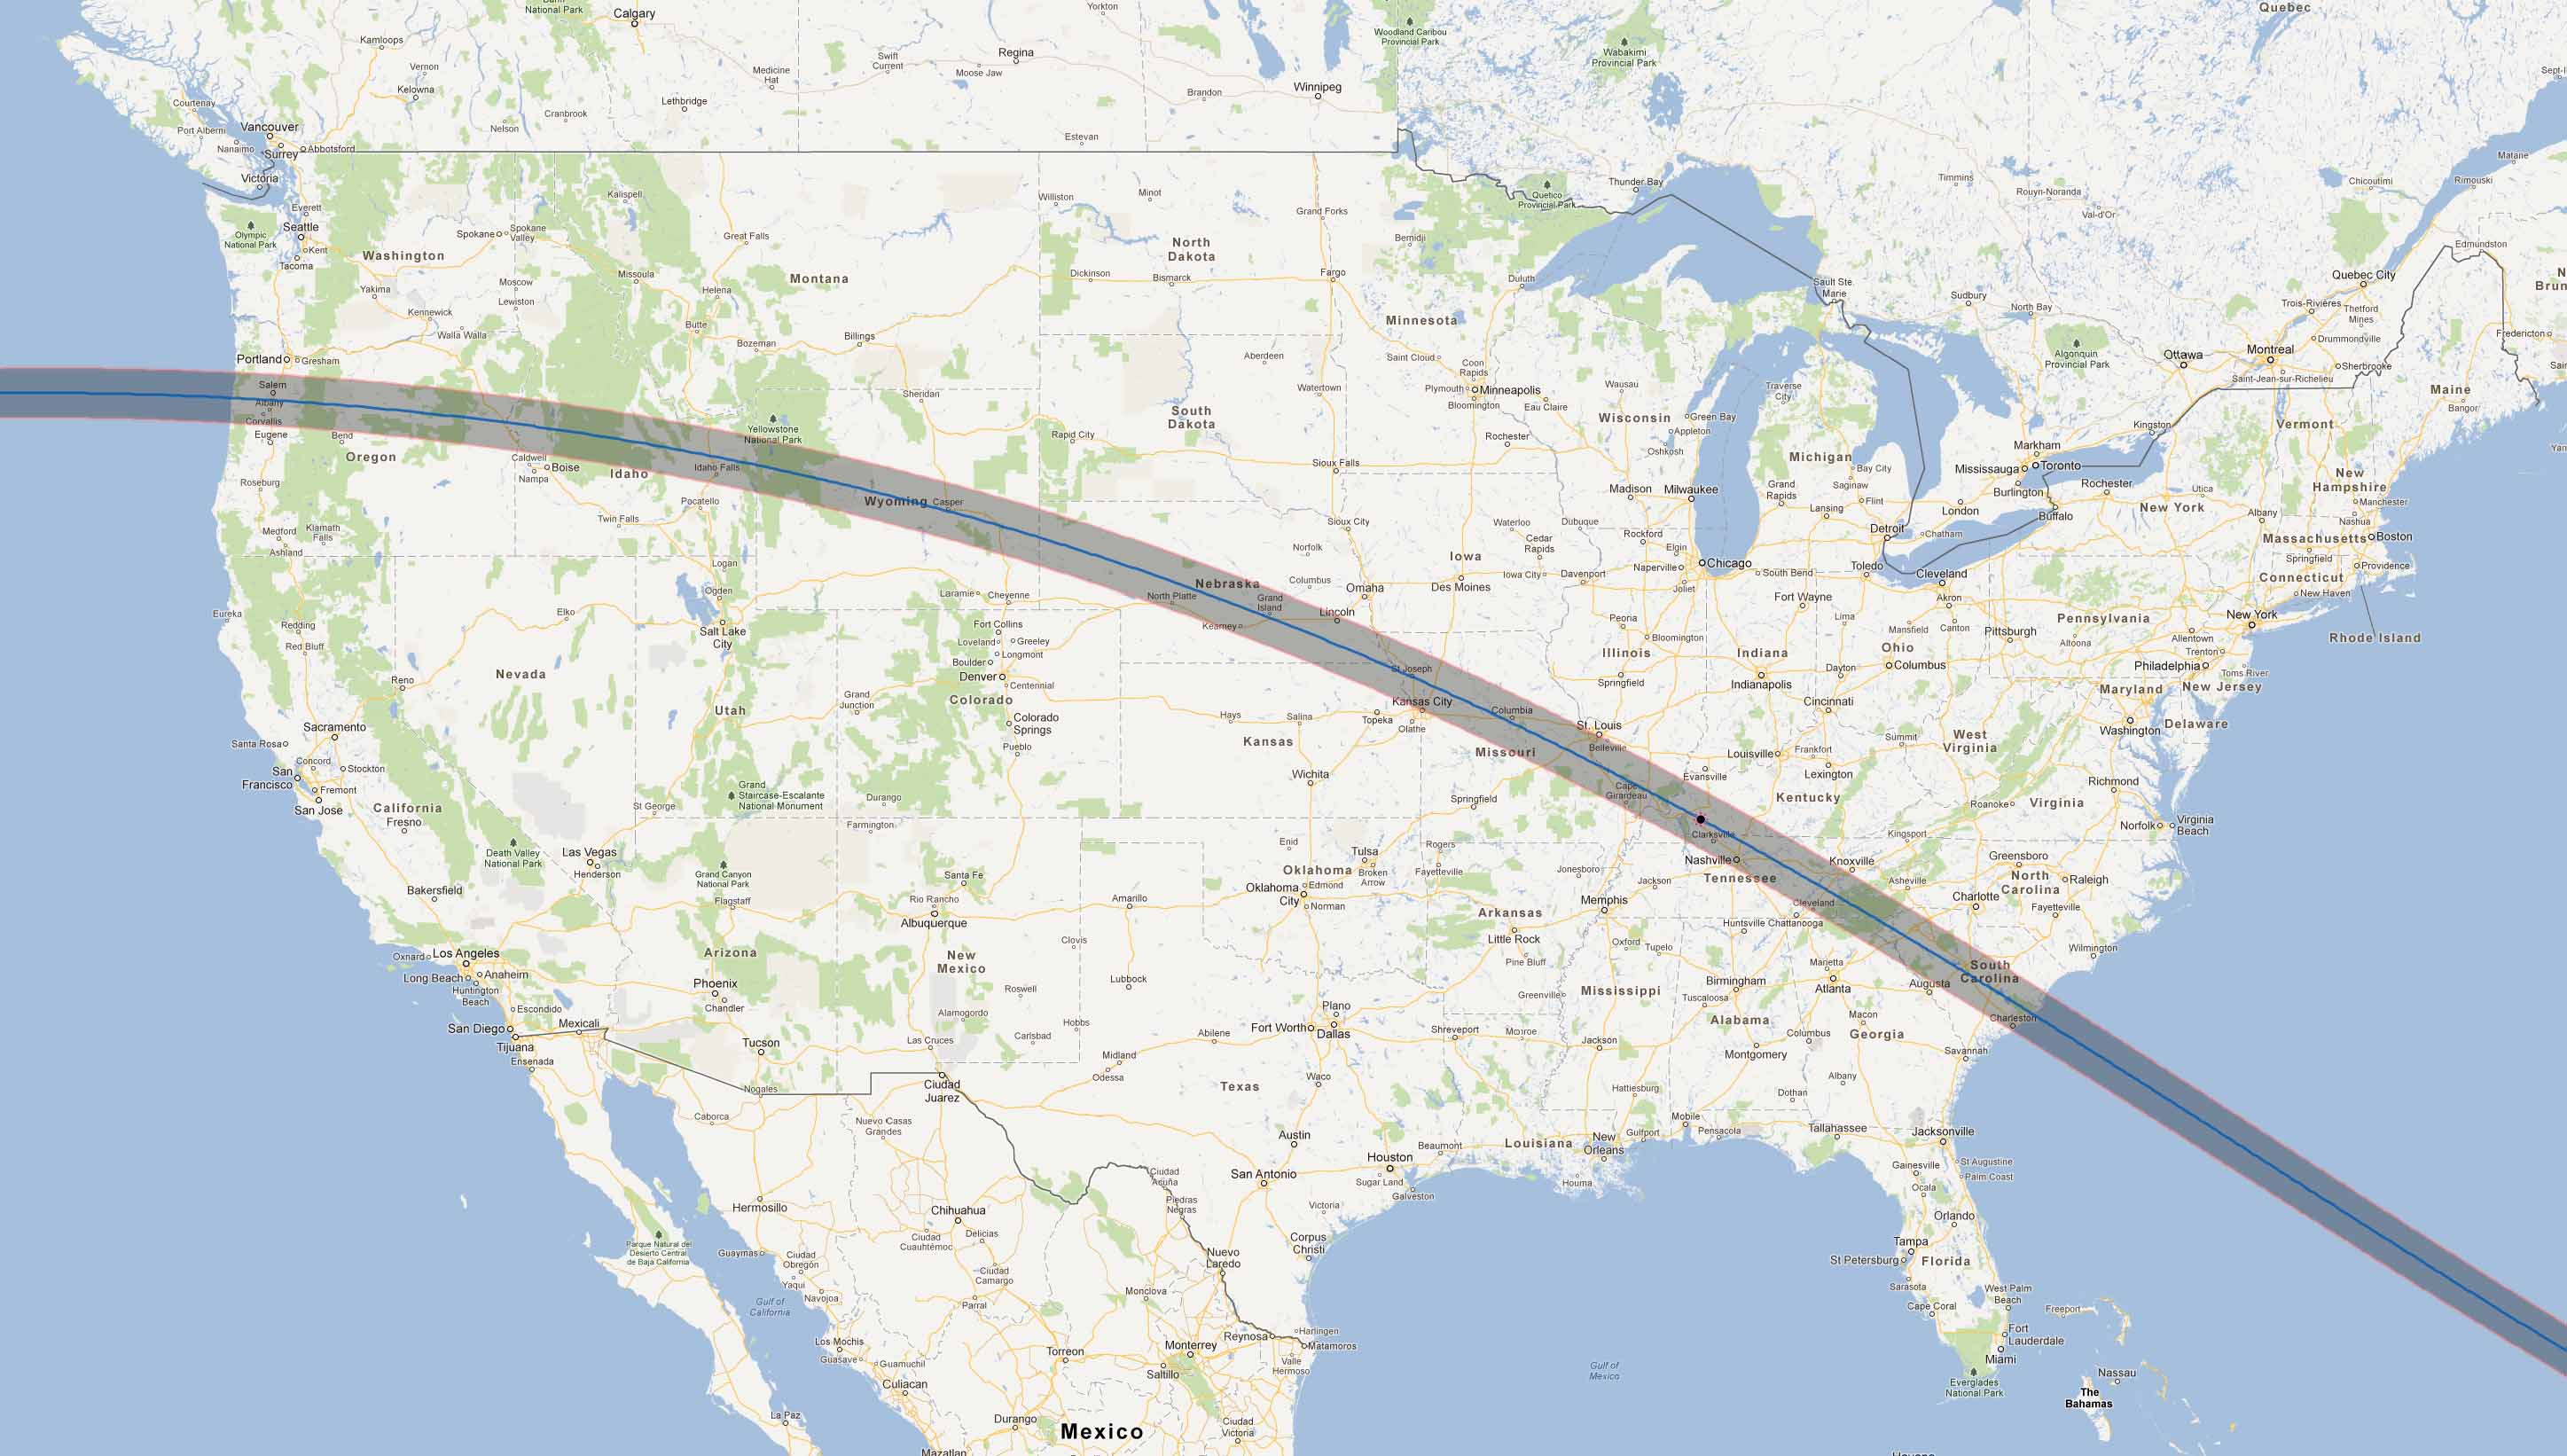 RV Guide for the 2017 eclipse path across the U.S.